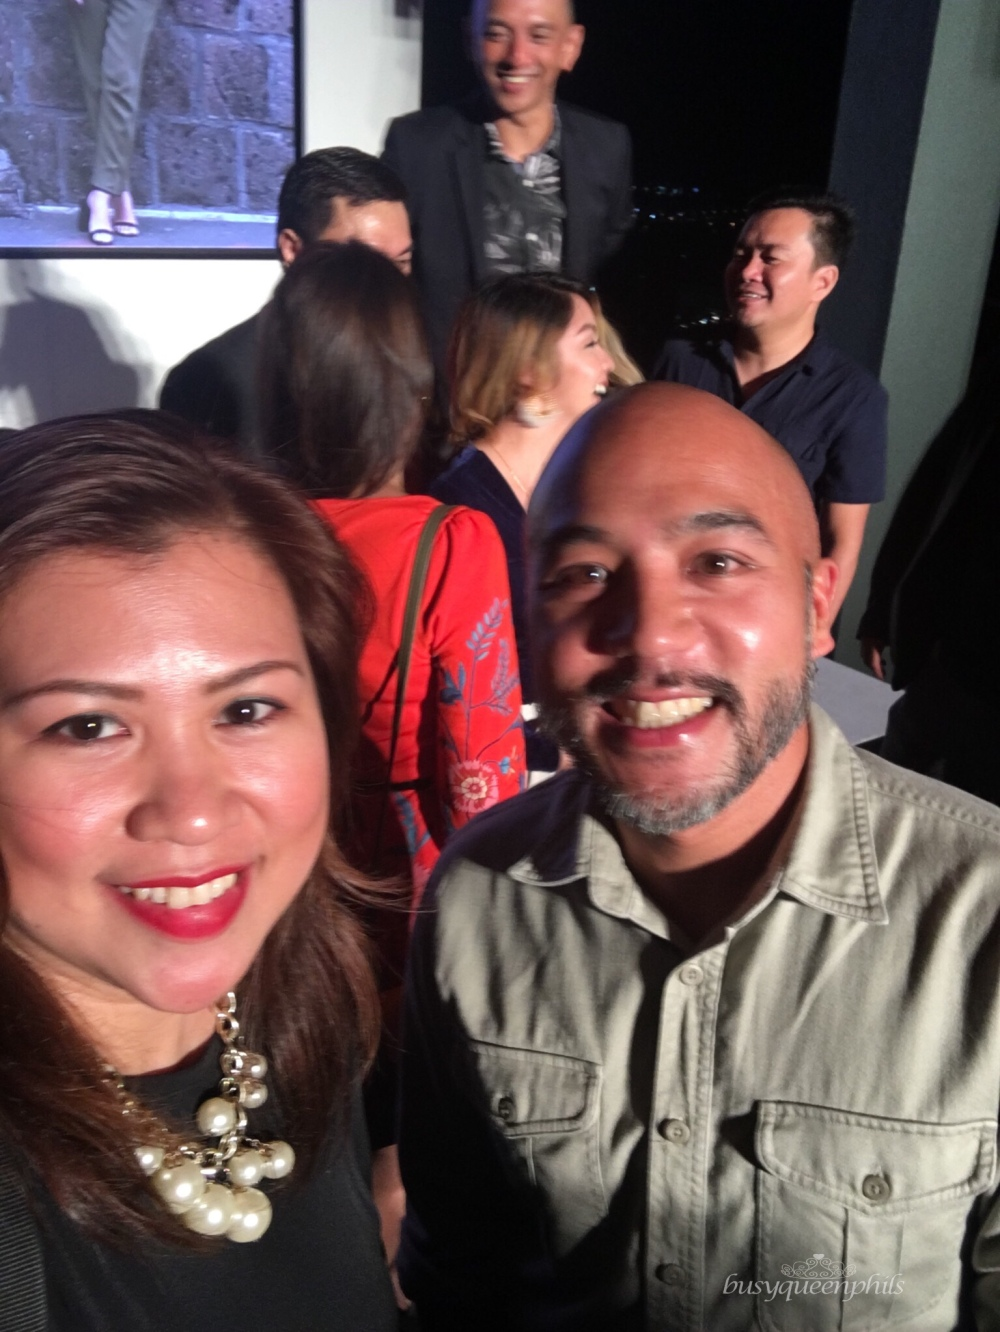 Busyqueenphils with rock star Chef JP Anglo at AirAsia Red Talks launch